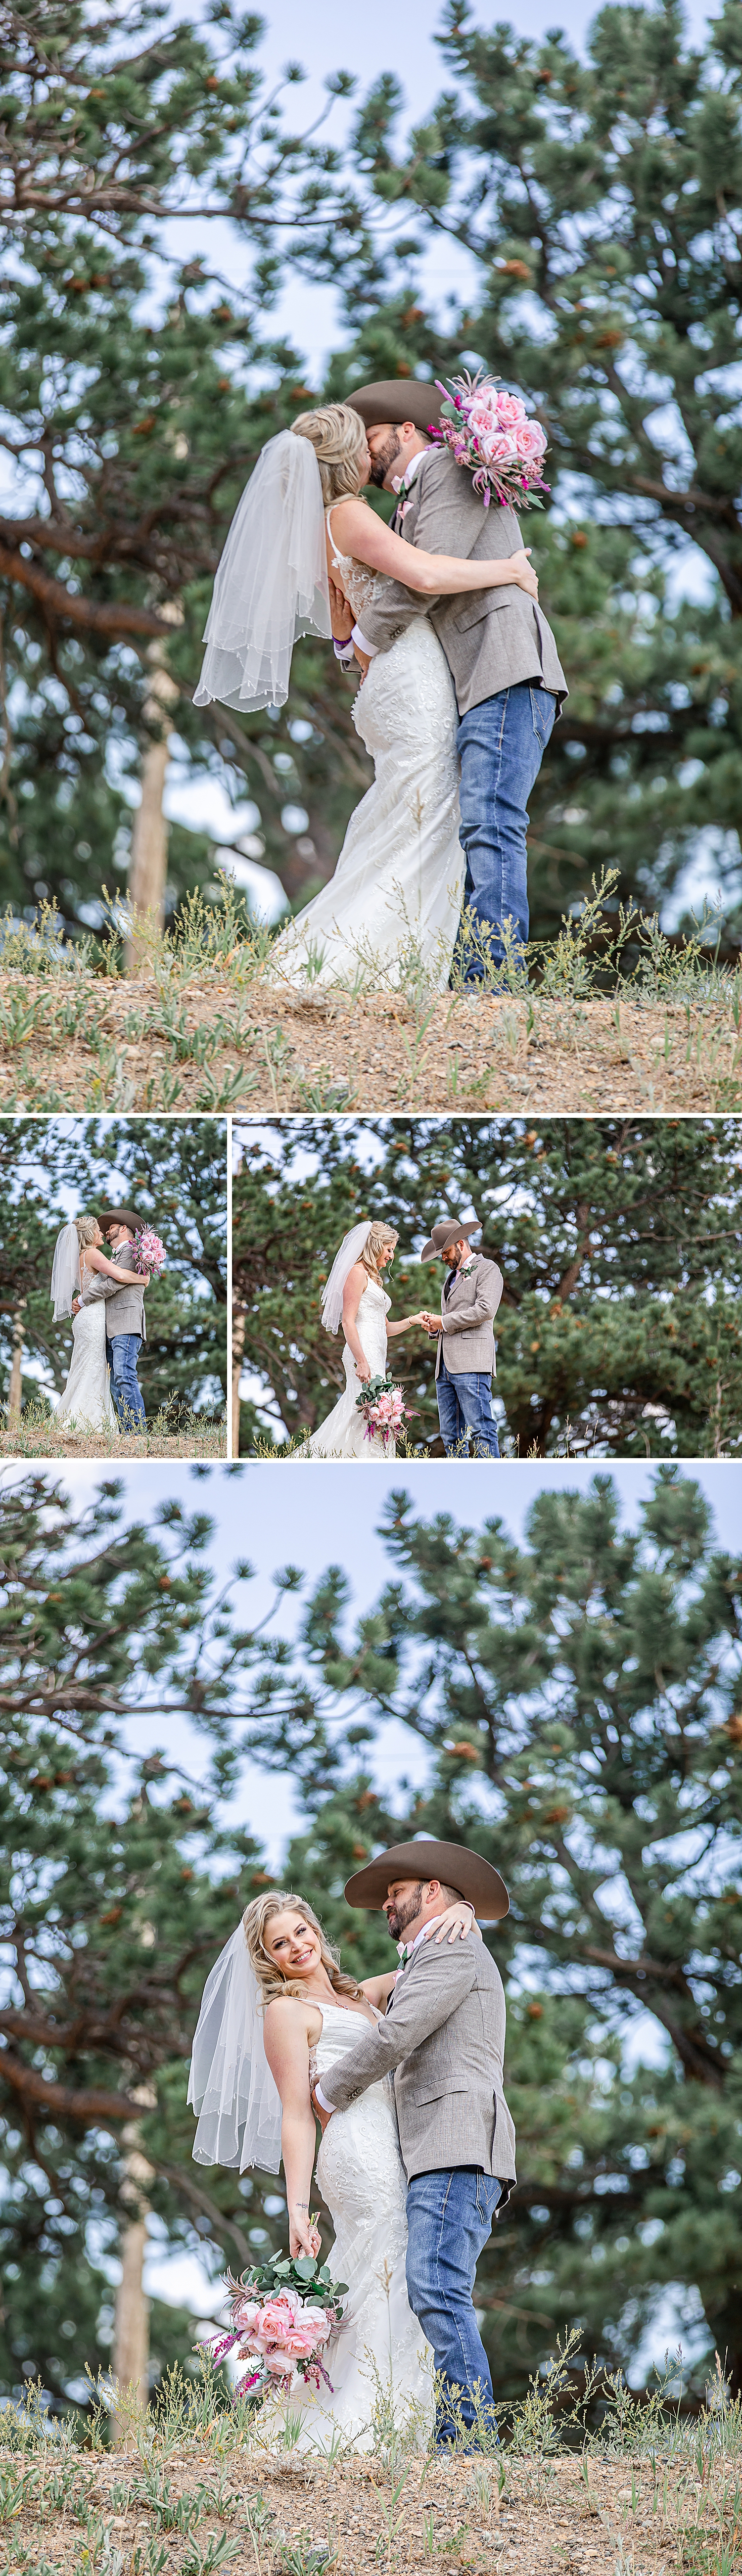 Carly-Barton-Photography-Rocky-Mountain-National-Park-Estes-Park-Wedding-Elopement_0041.jpg